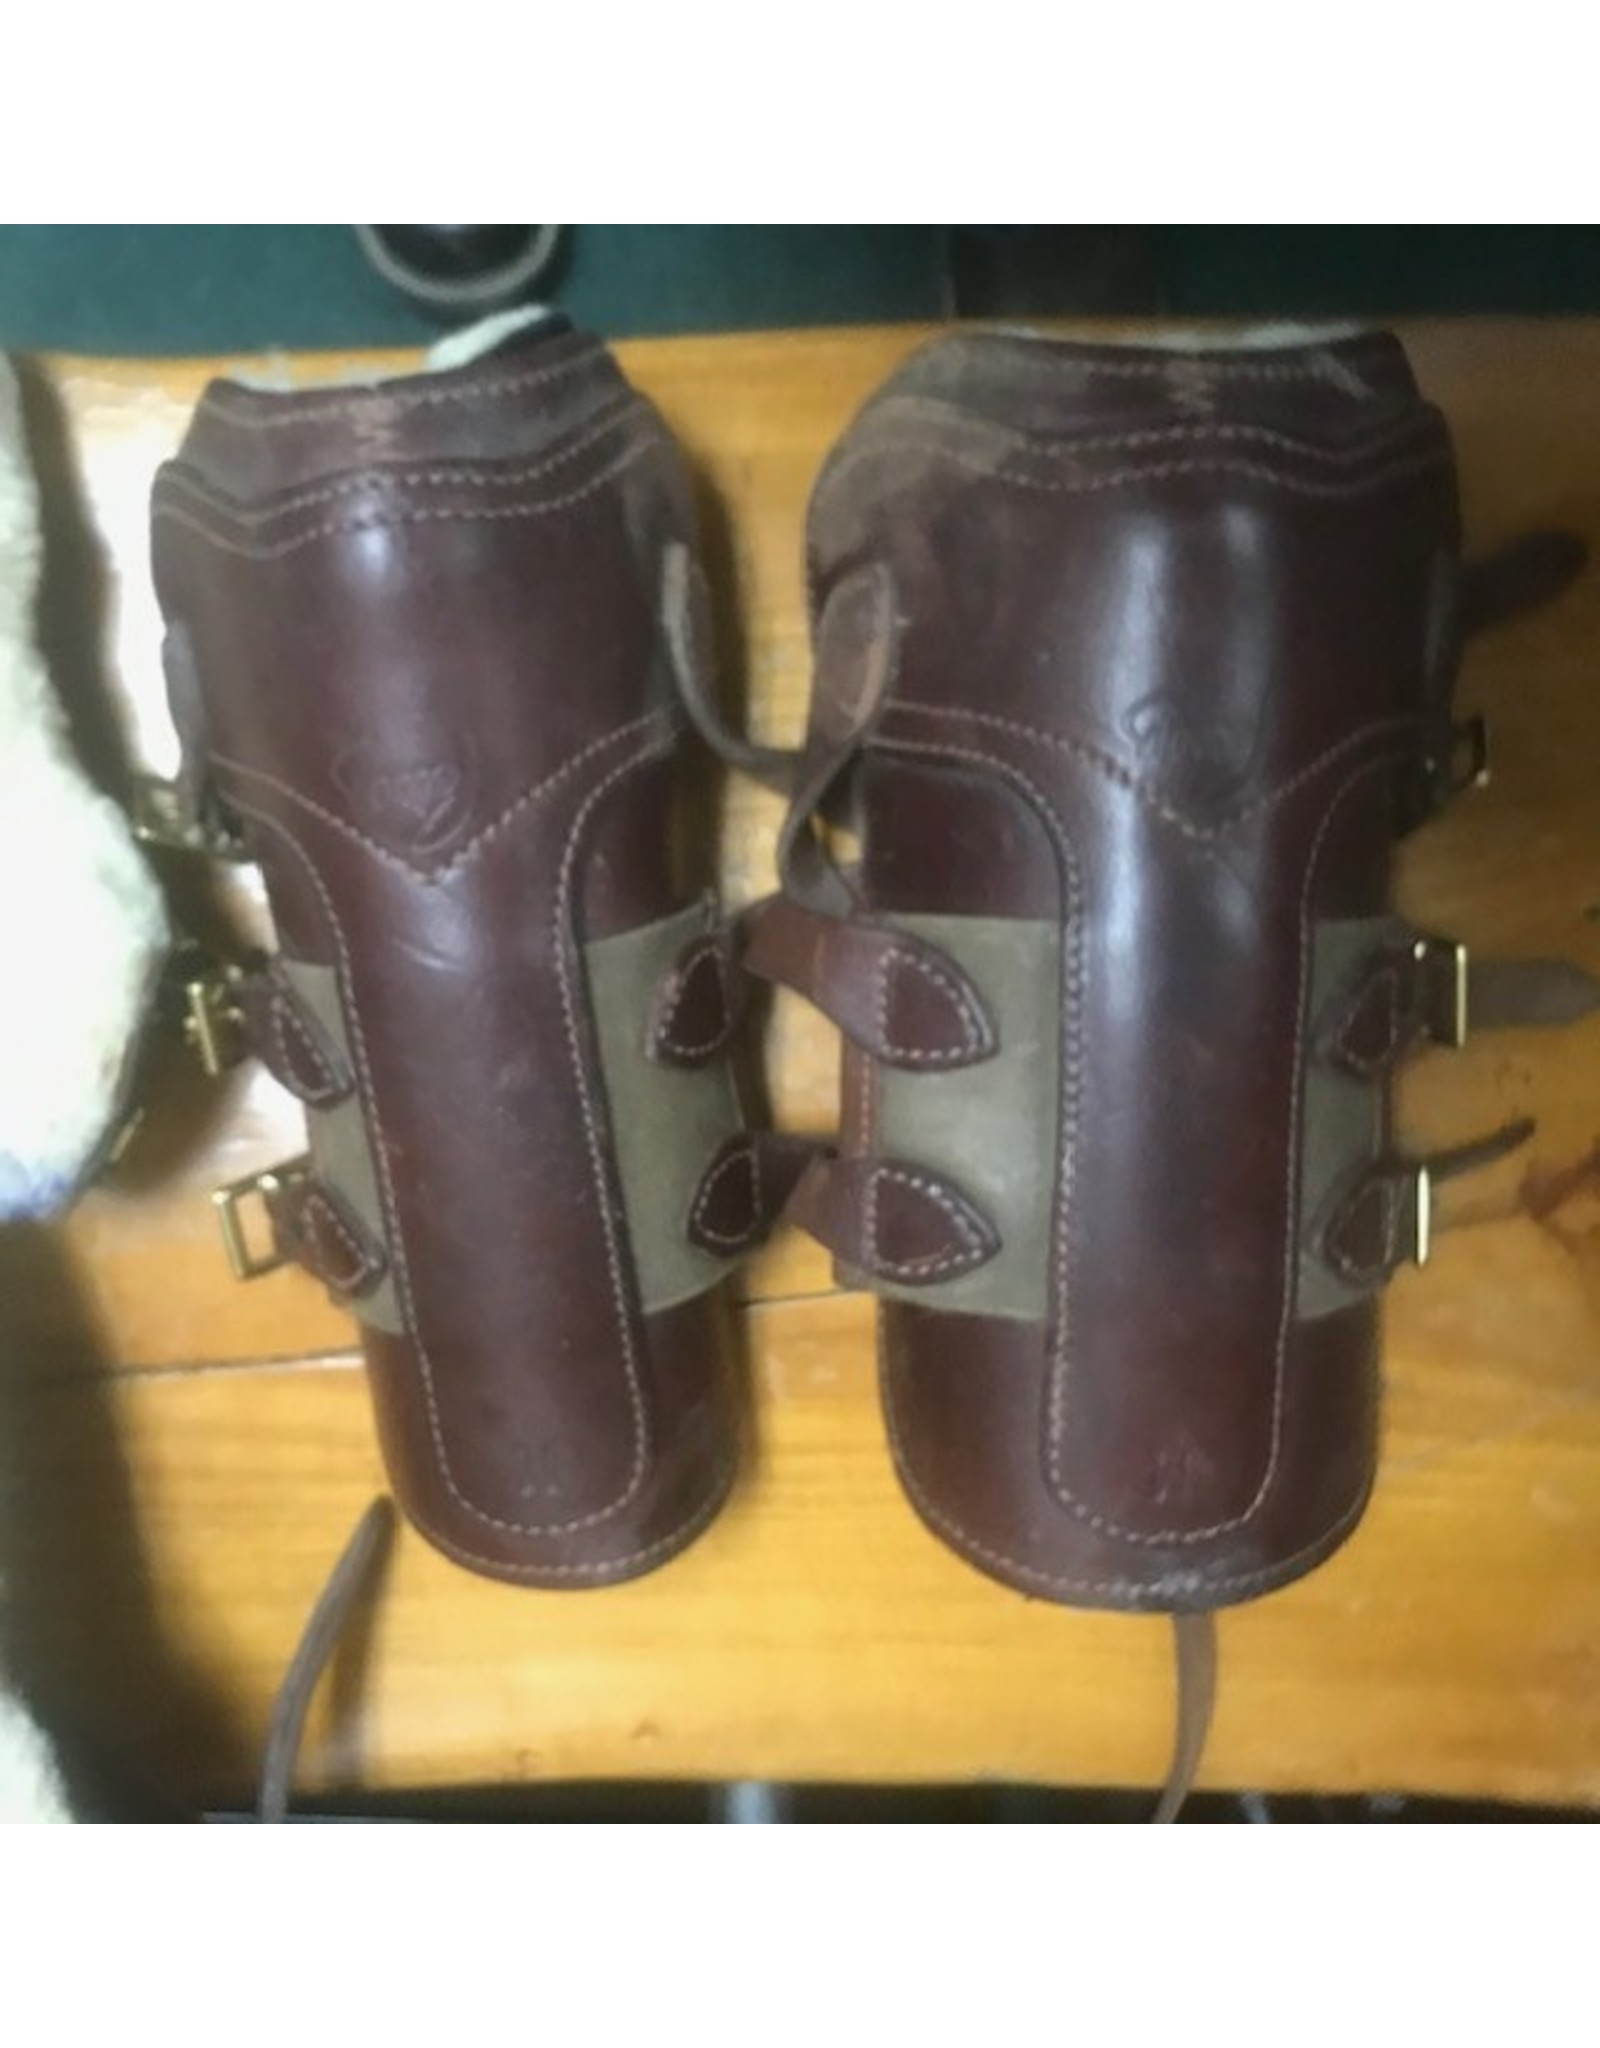 Pessoa Open Front 3 buckle boods and hinds